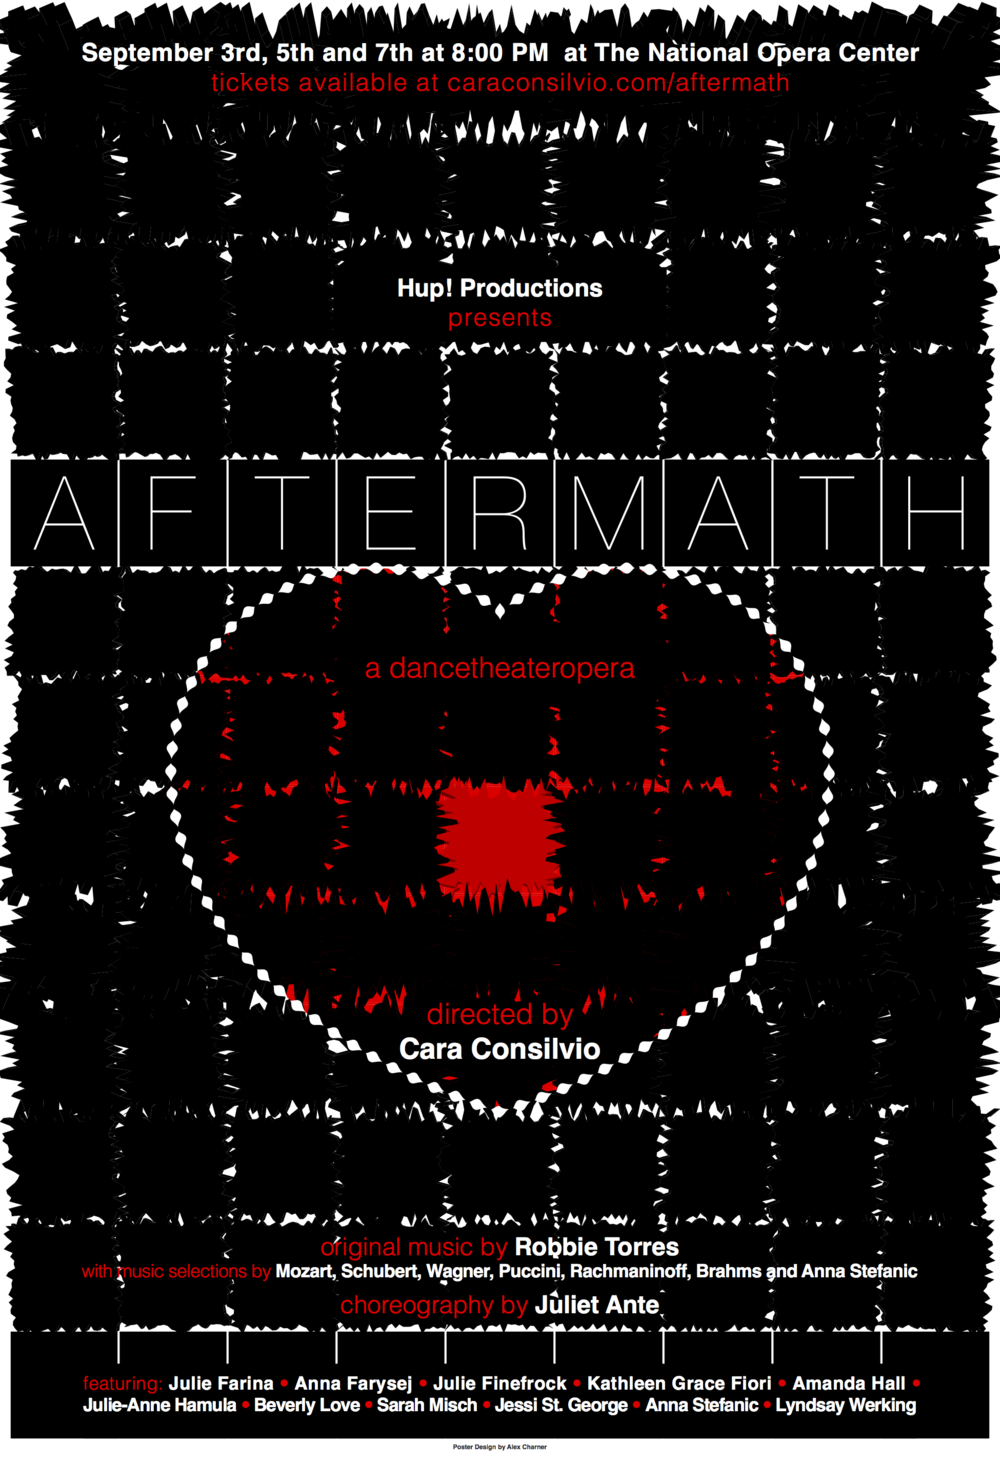 Hup! Productions presents:   Aftermath   A dancetheateropera directed by Cara Consilvio